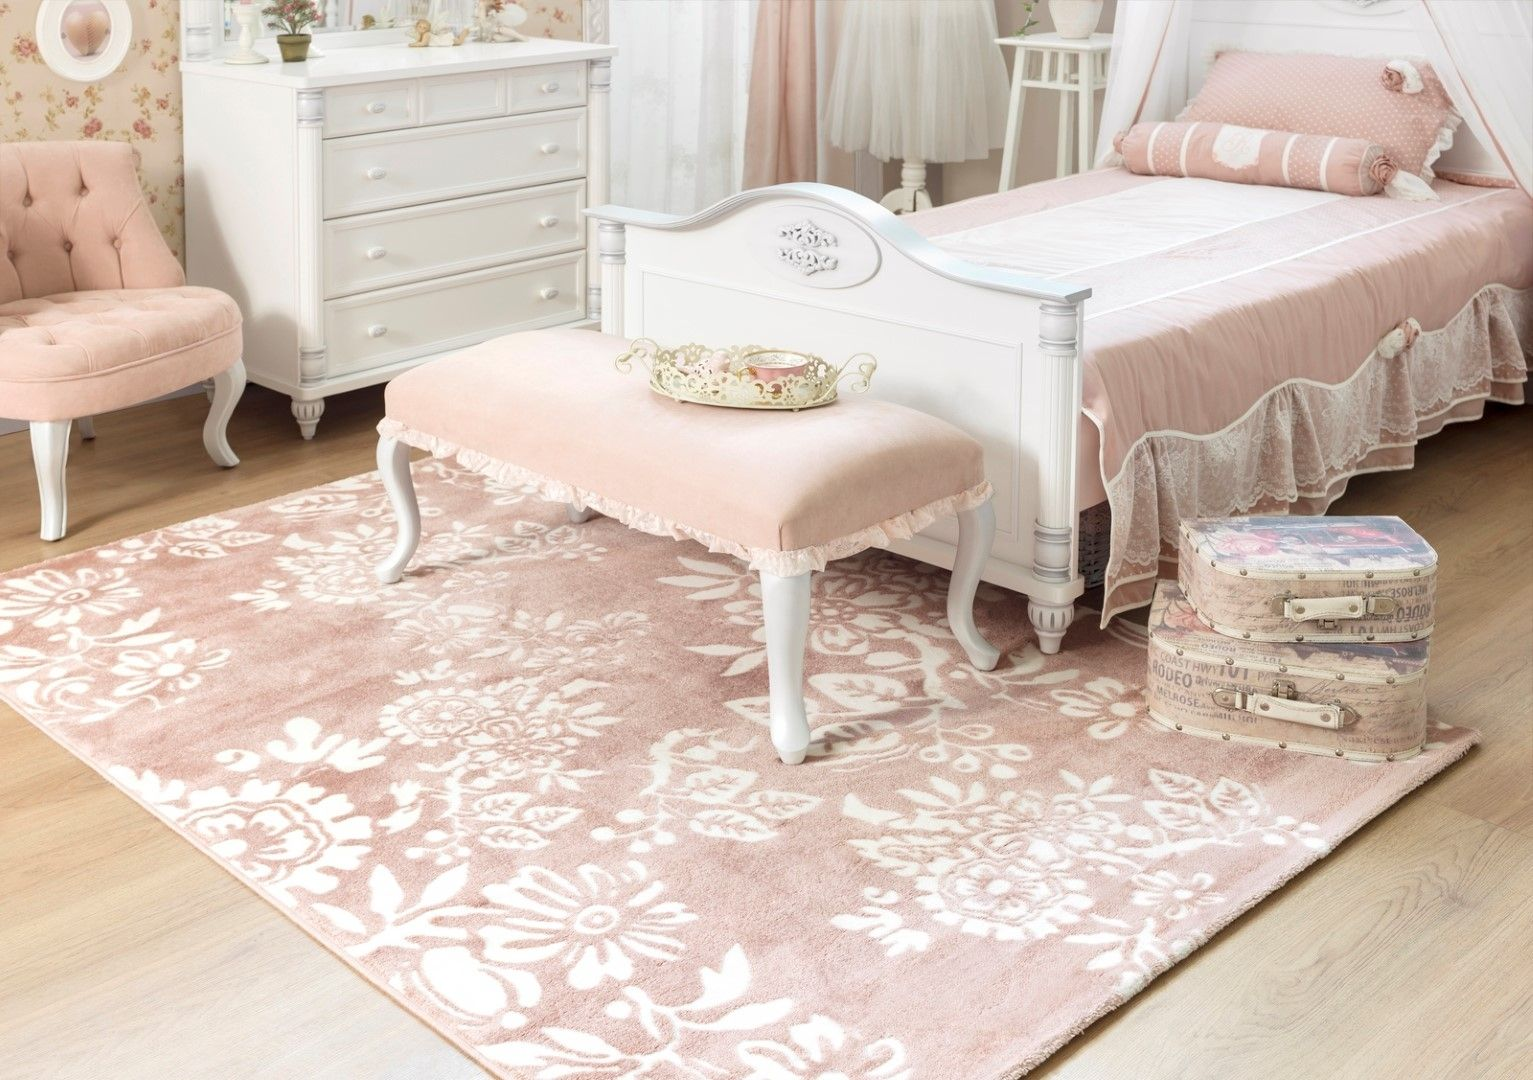 Licht Roze Vloerkleed Dream Tapijt Vloerkleed Romantic Kinderkamer Bed Kinderbed